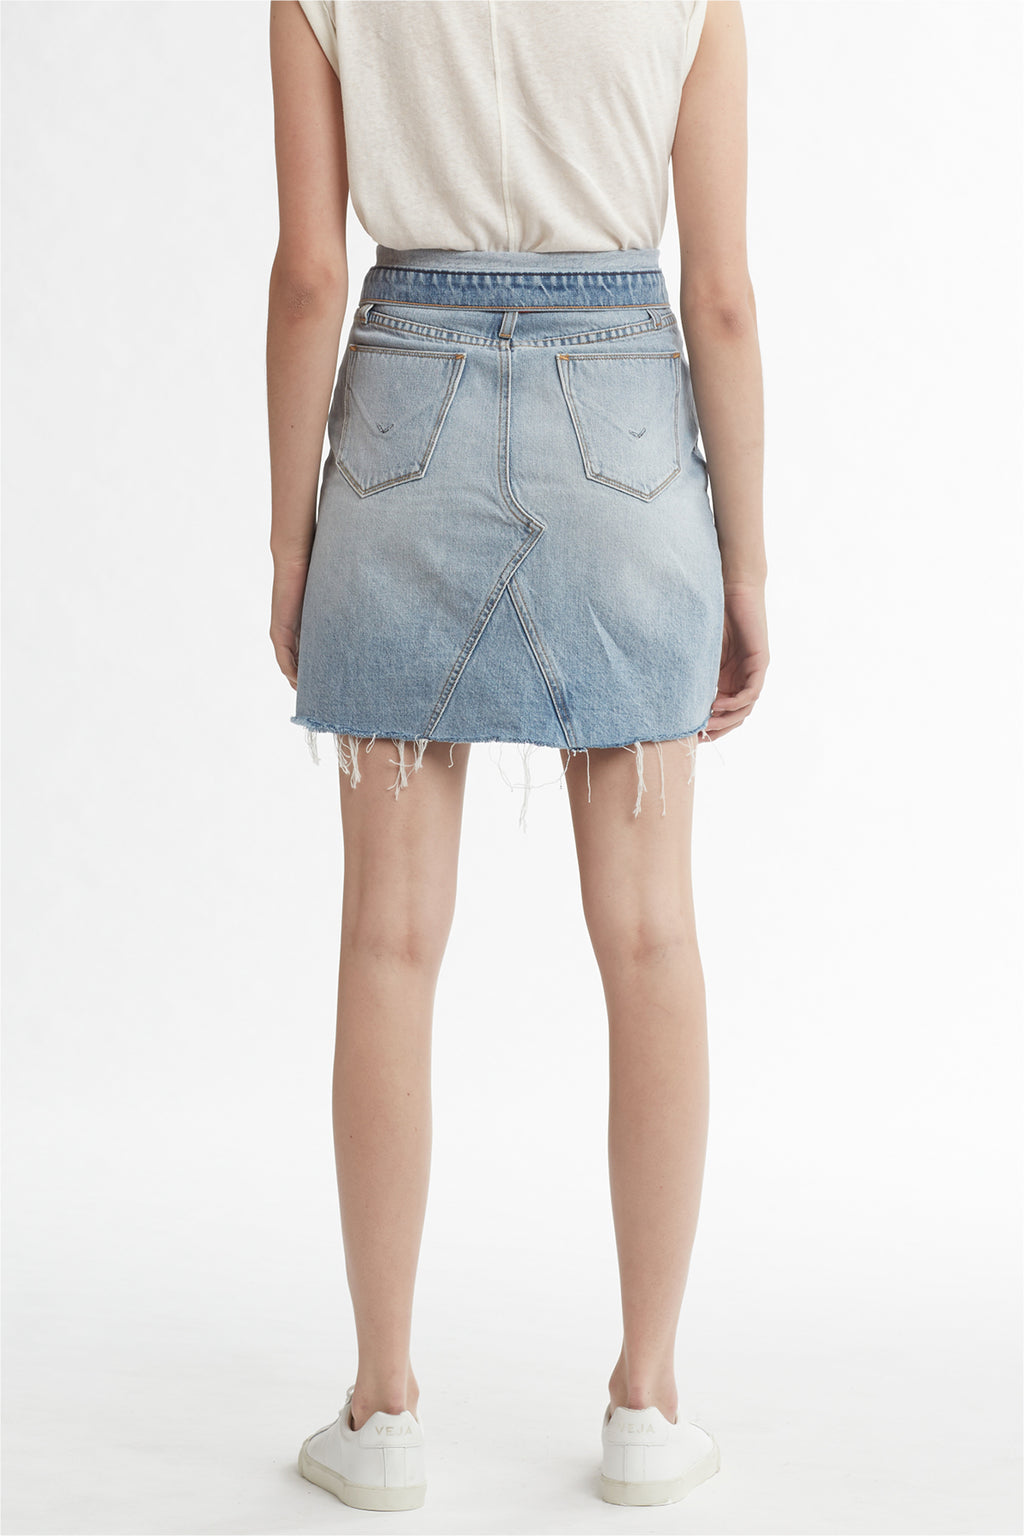 SLOANE KNEE-LENGTH DENIM SKIRT - OVERTHROW - Image 4